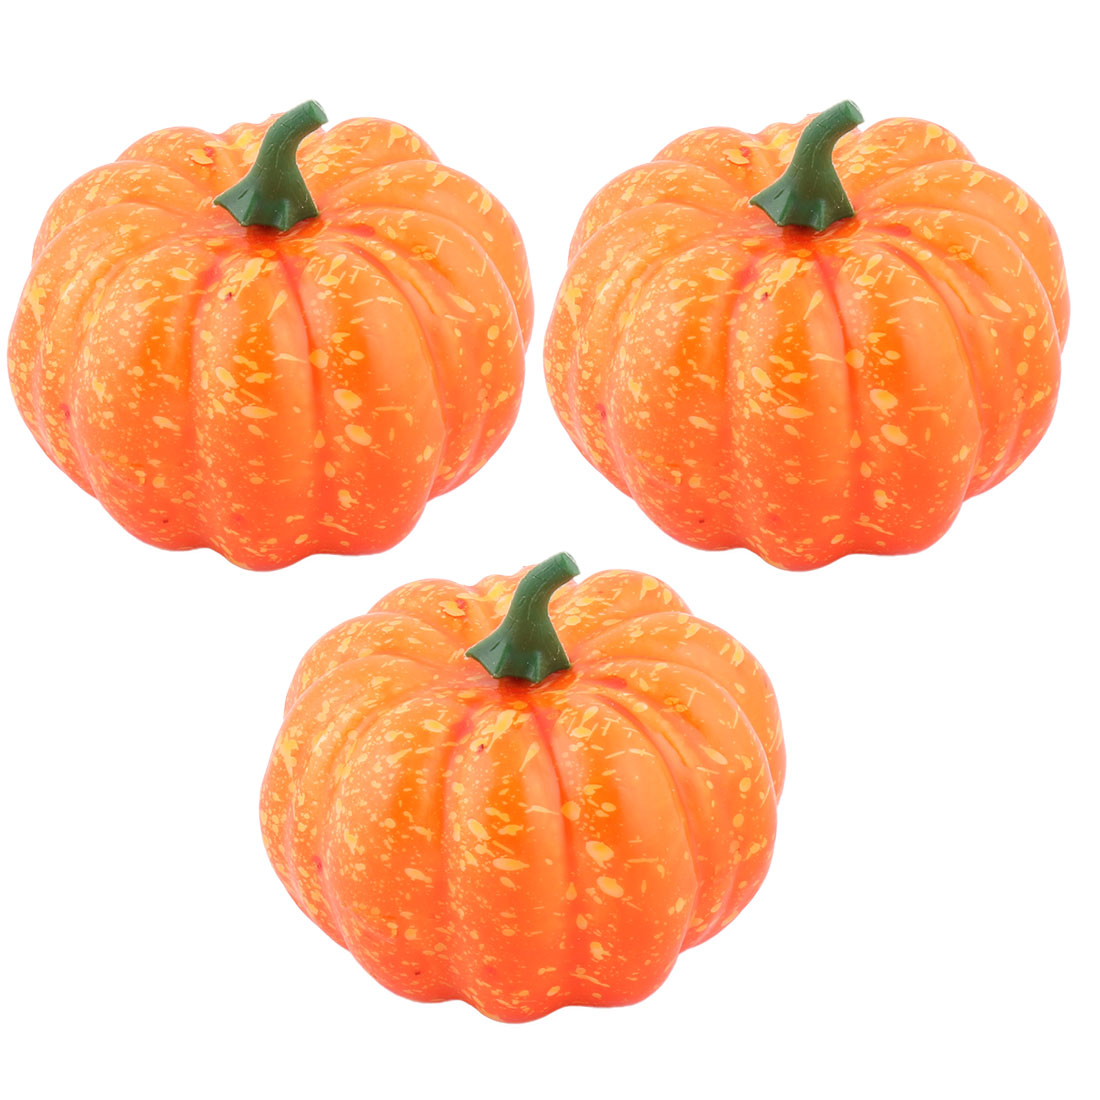 Home Plastic Desk Table Decoration Simulation Artificial Vegetable Pumpkin Orange 3 Pcs